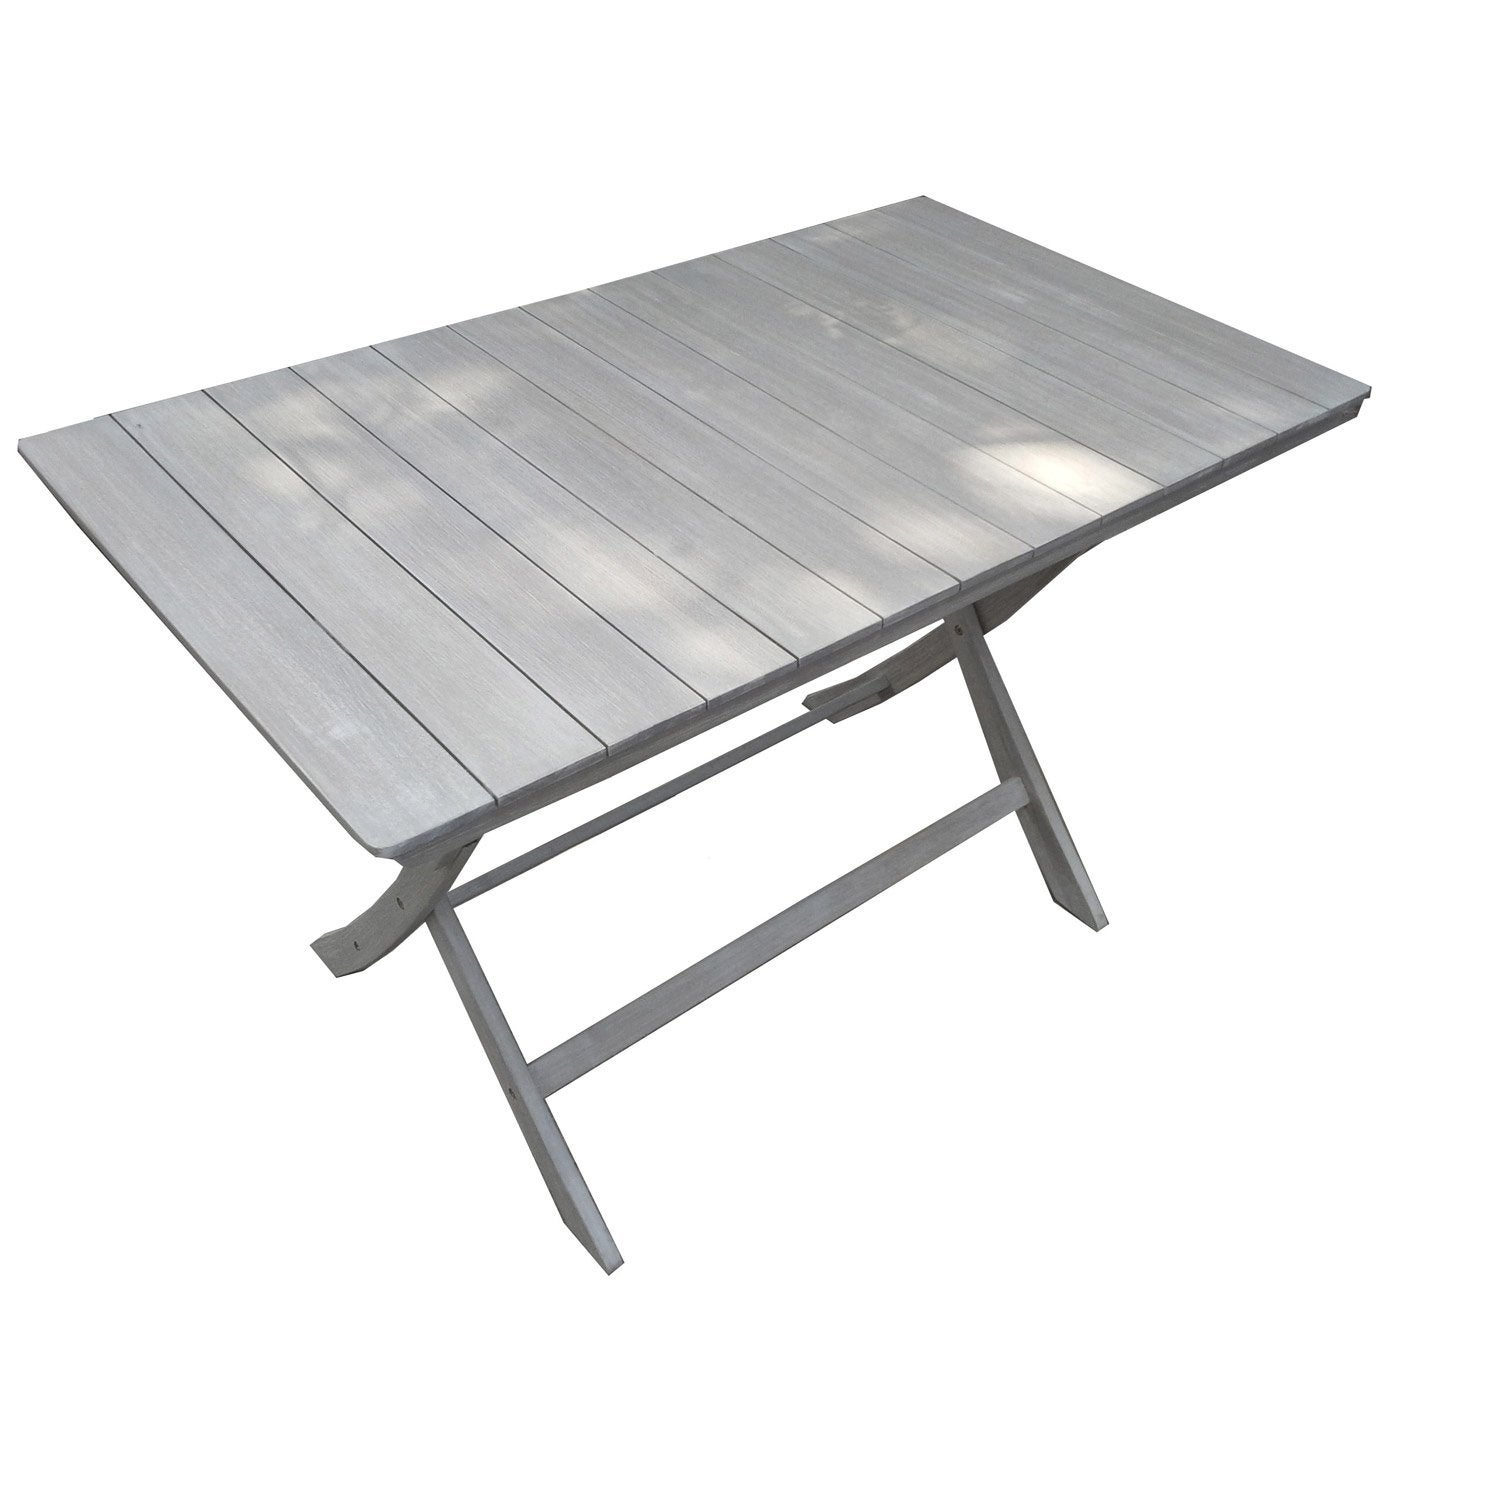 Table de jardin naterial portofino rectangulaire gris 4 for Banco jardin leroy merlin